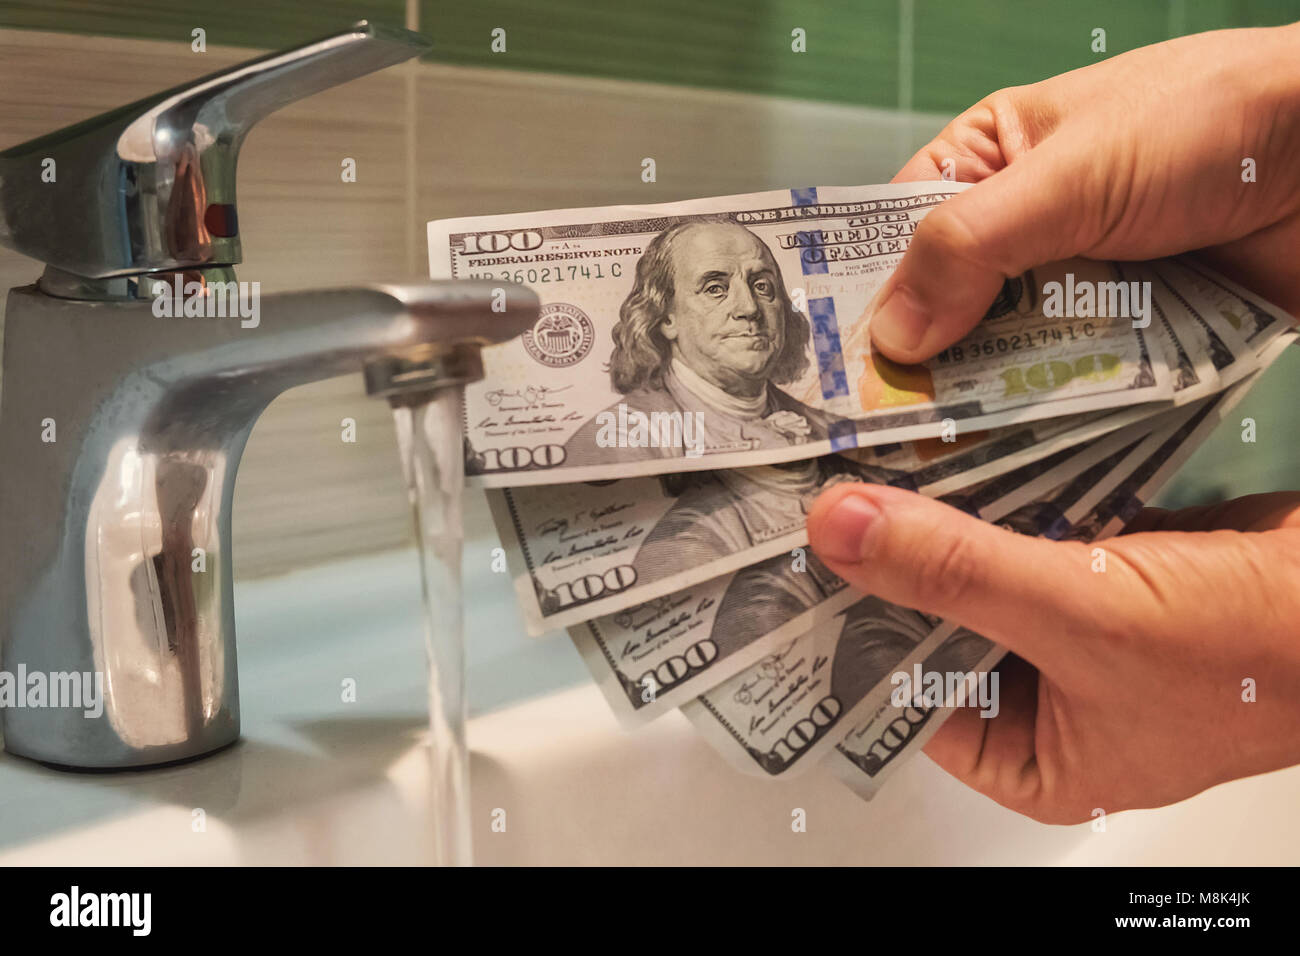 Money Launder. US dollars hung under running tap water as a metaphor for money laundering. black, market - Stock Image